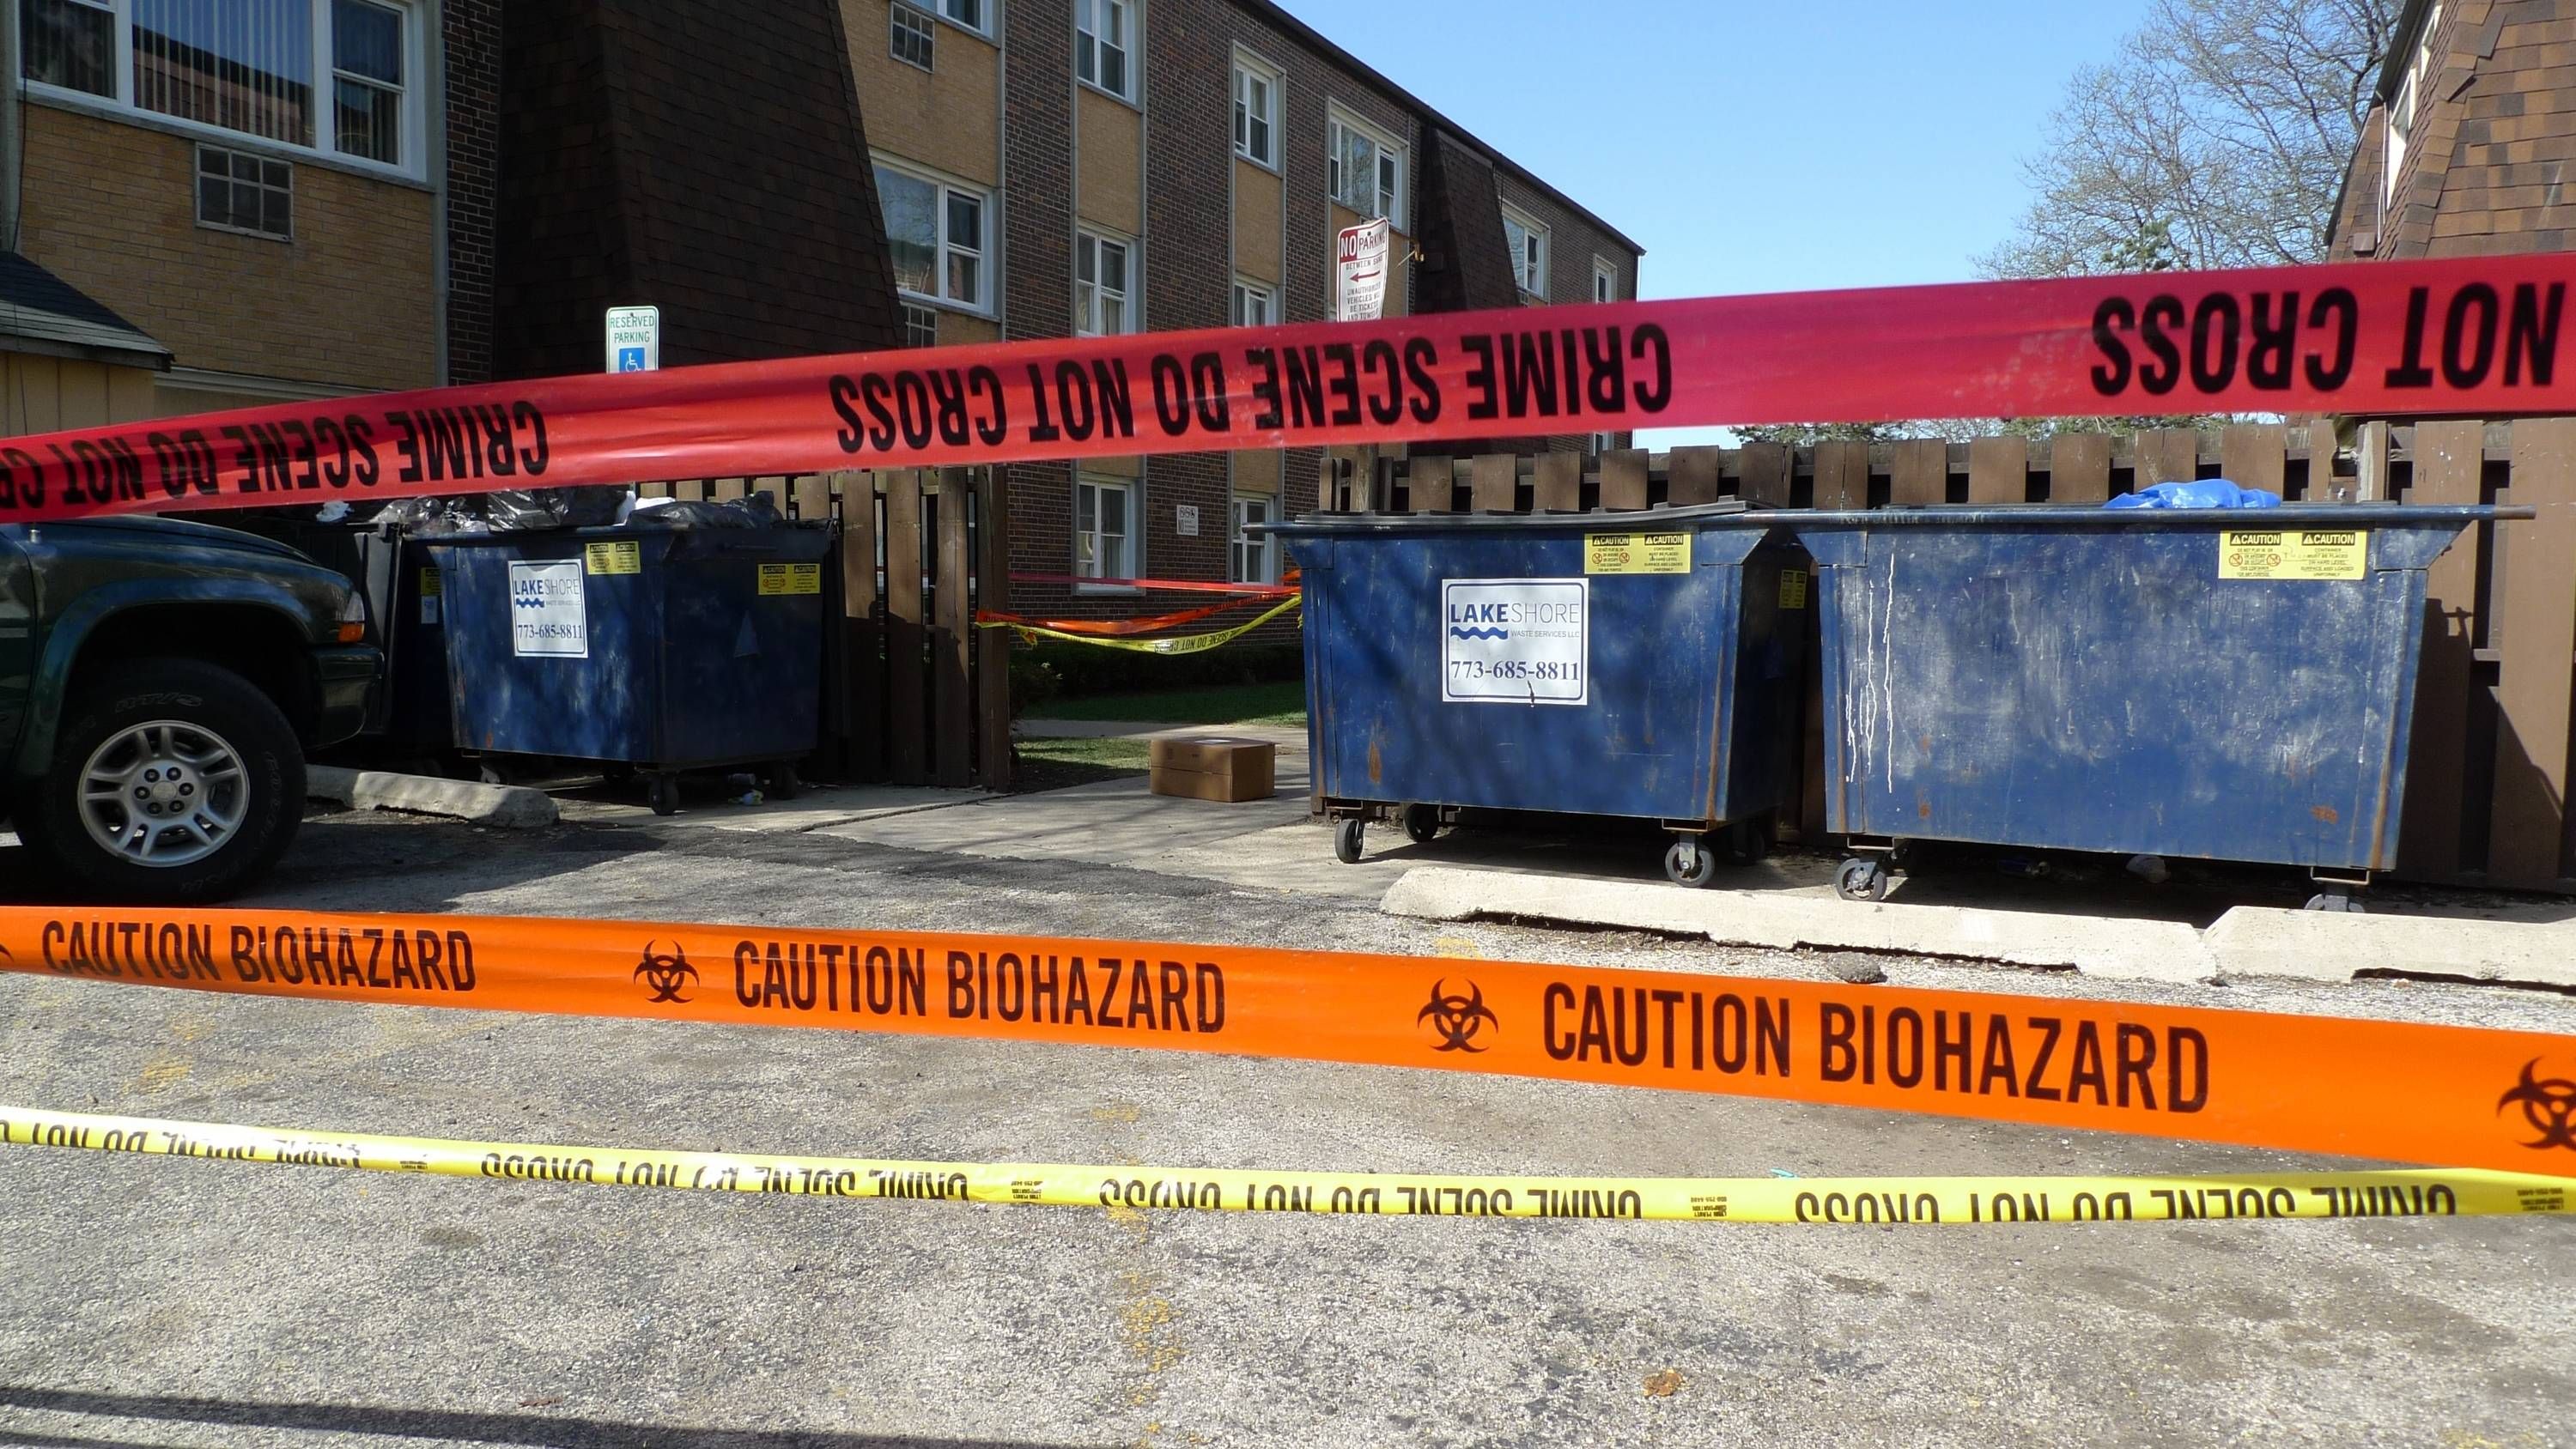 Arlington Heights police are investigating the discovery of a partial human corpse found in an alleyway behind 21 N. Dryden at the Marketview Apartments in Arlington Heights.